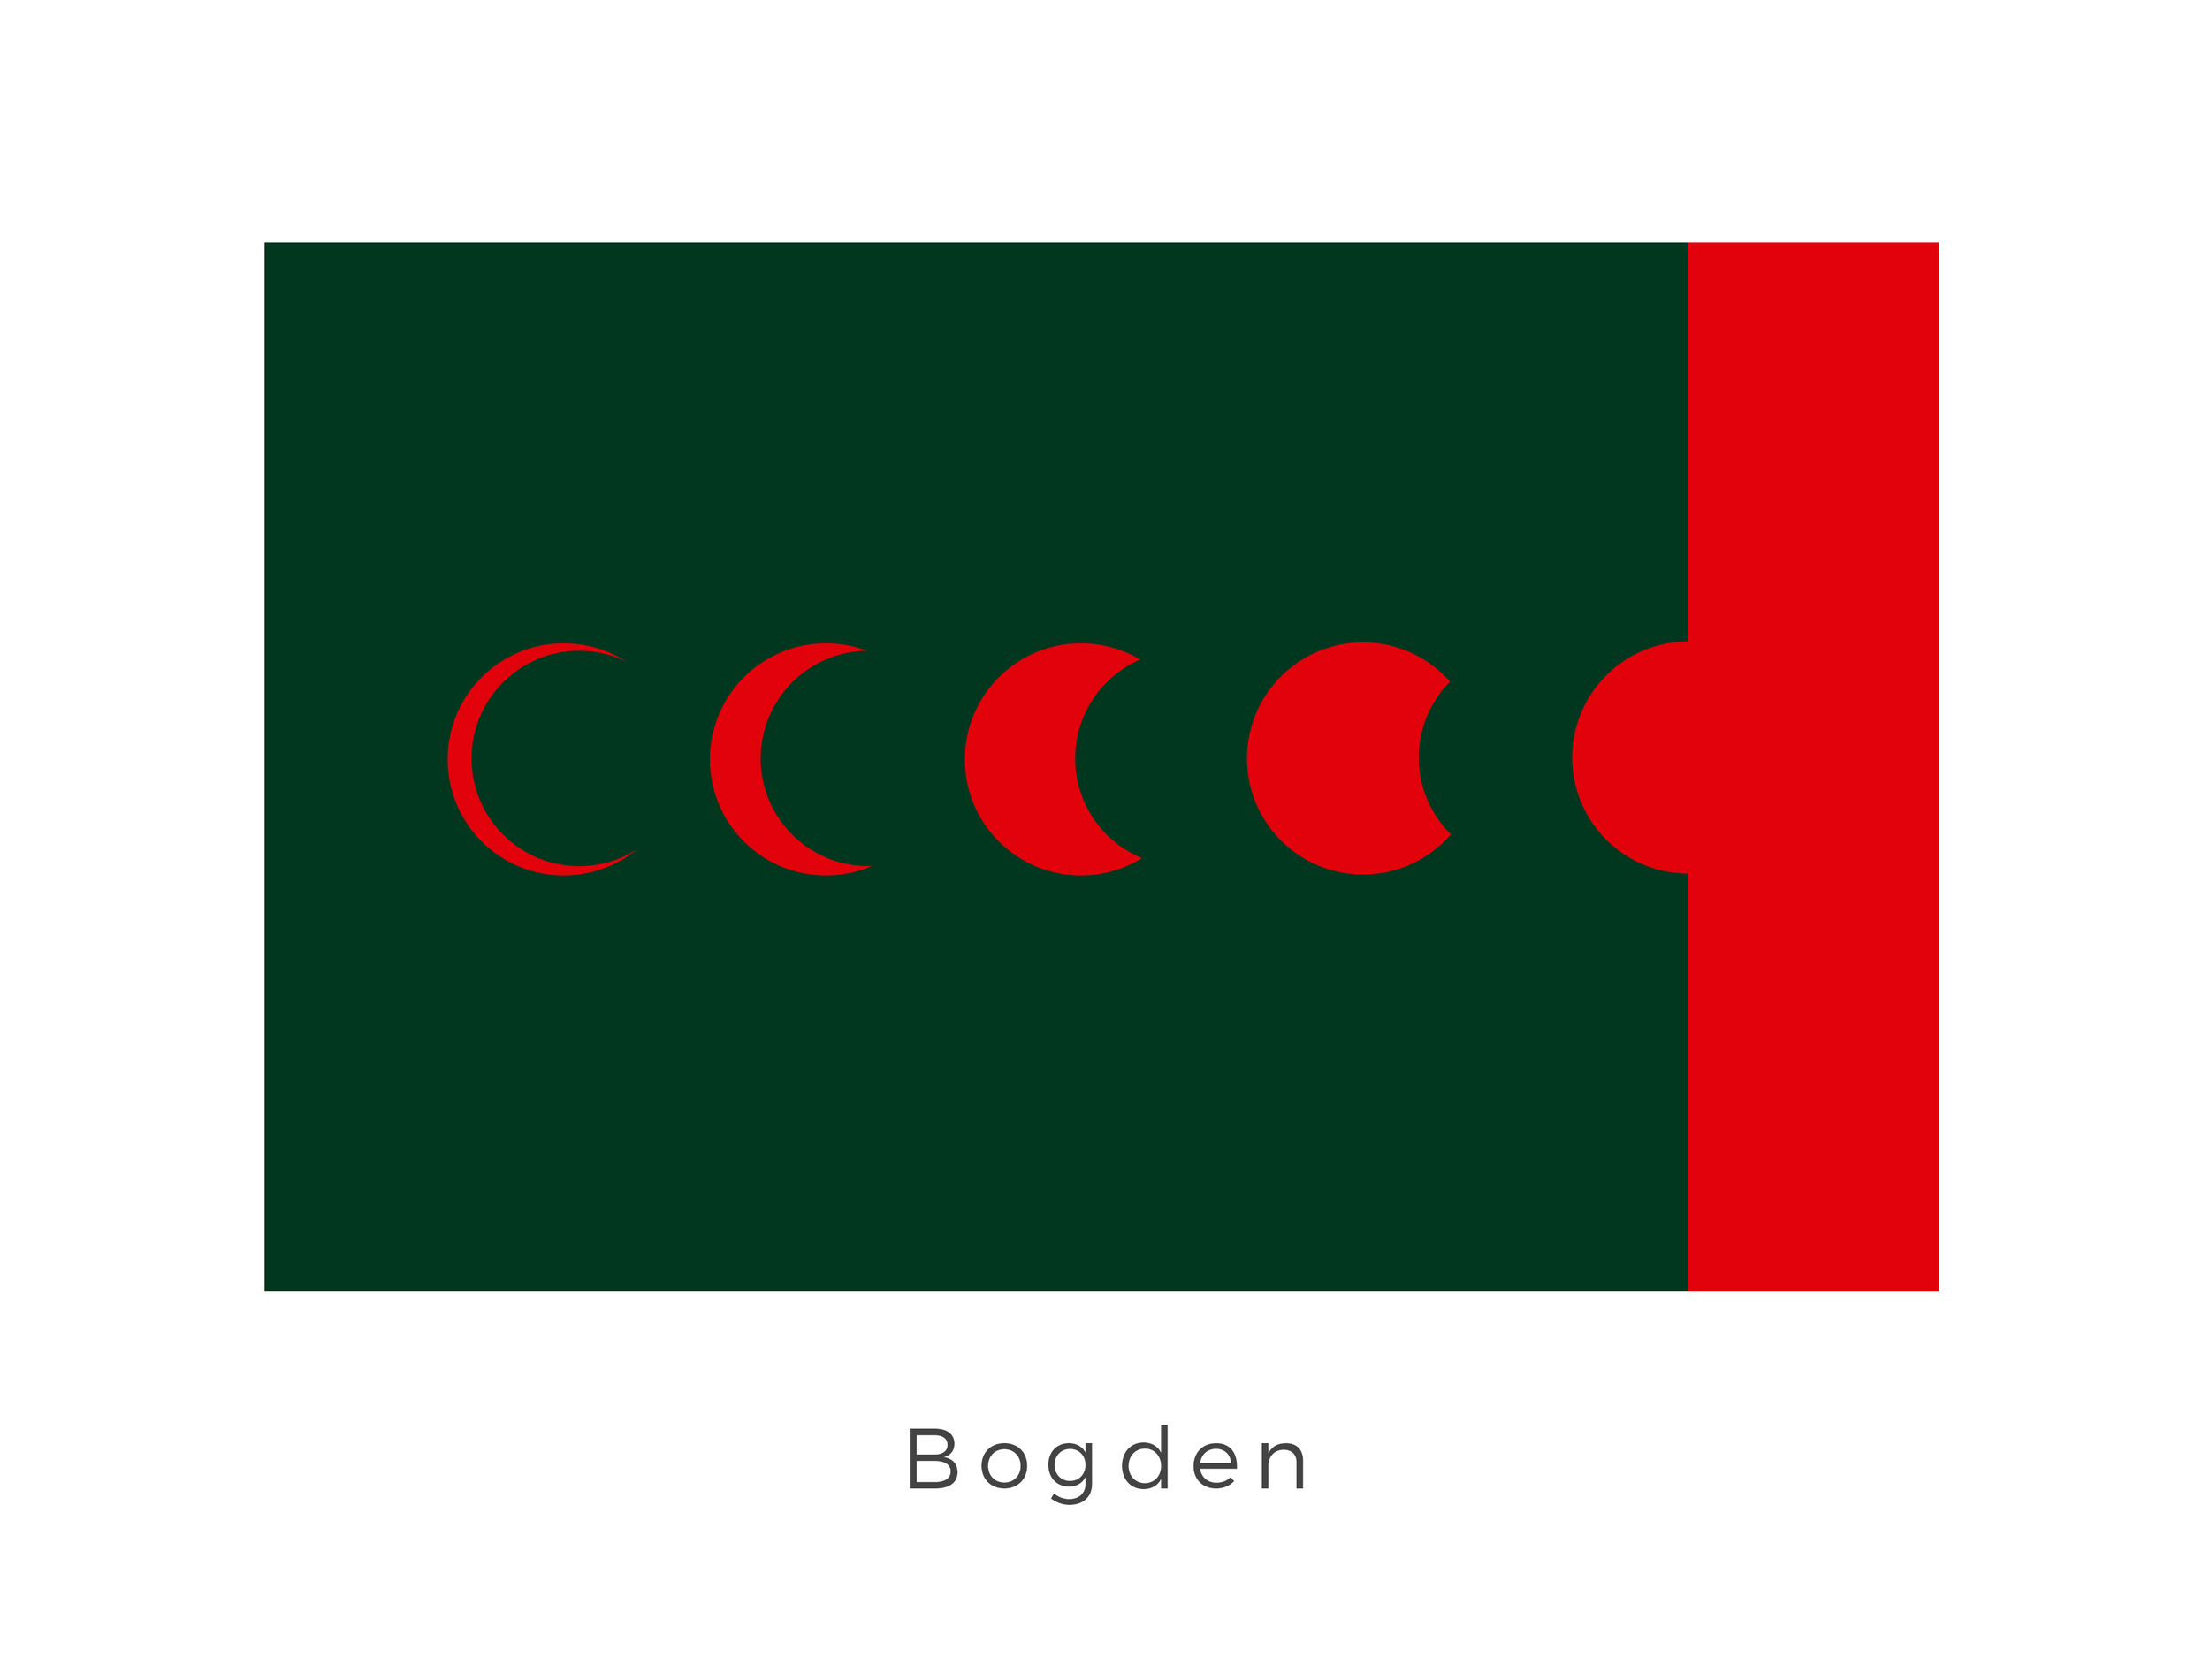 Bogden , also known as Bodgen, was a many-mooned world located in the Inner Rim, along the Hydian Way, between Arkania and Ploo. The many moons came to dominate life on Bogden due to their immense gravitational pull. The deep green signifies the boggy swampland that covered much of the planet and the red was the famous lunar eclipses which would occur on the planet.